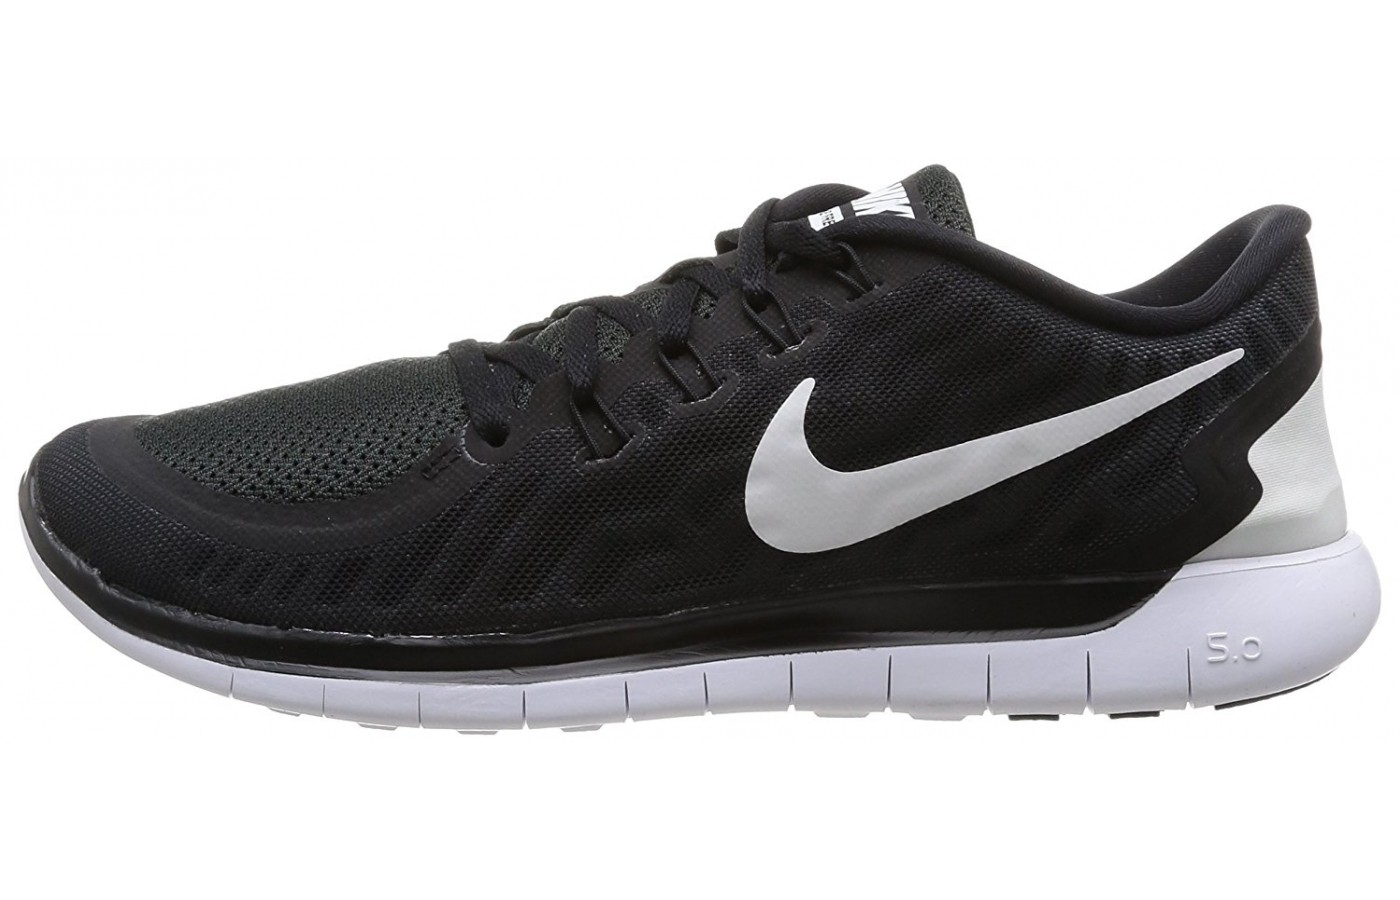 ... left to right view of the Nike Free 5.0 ...